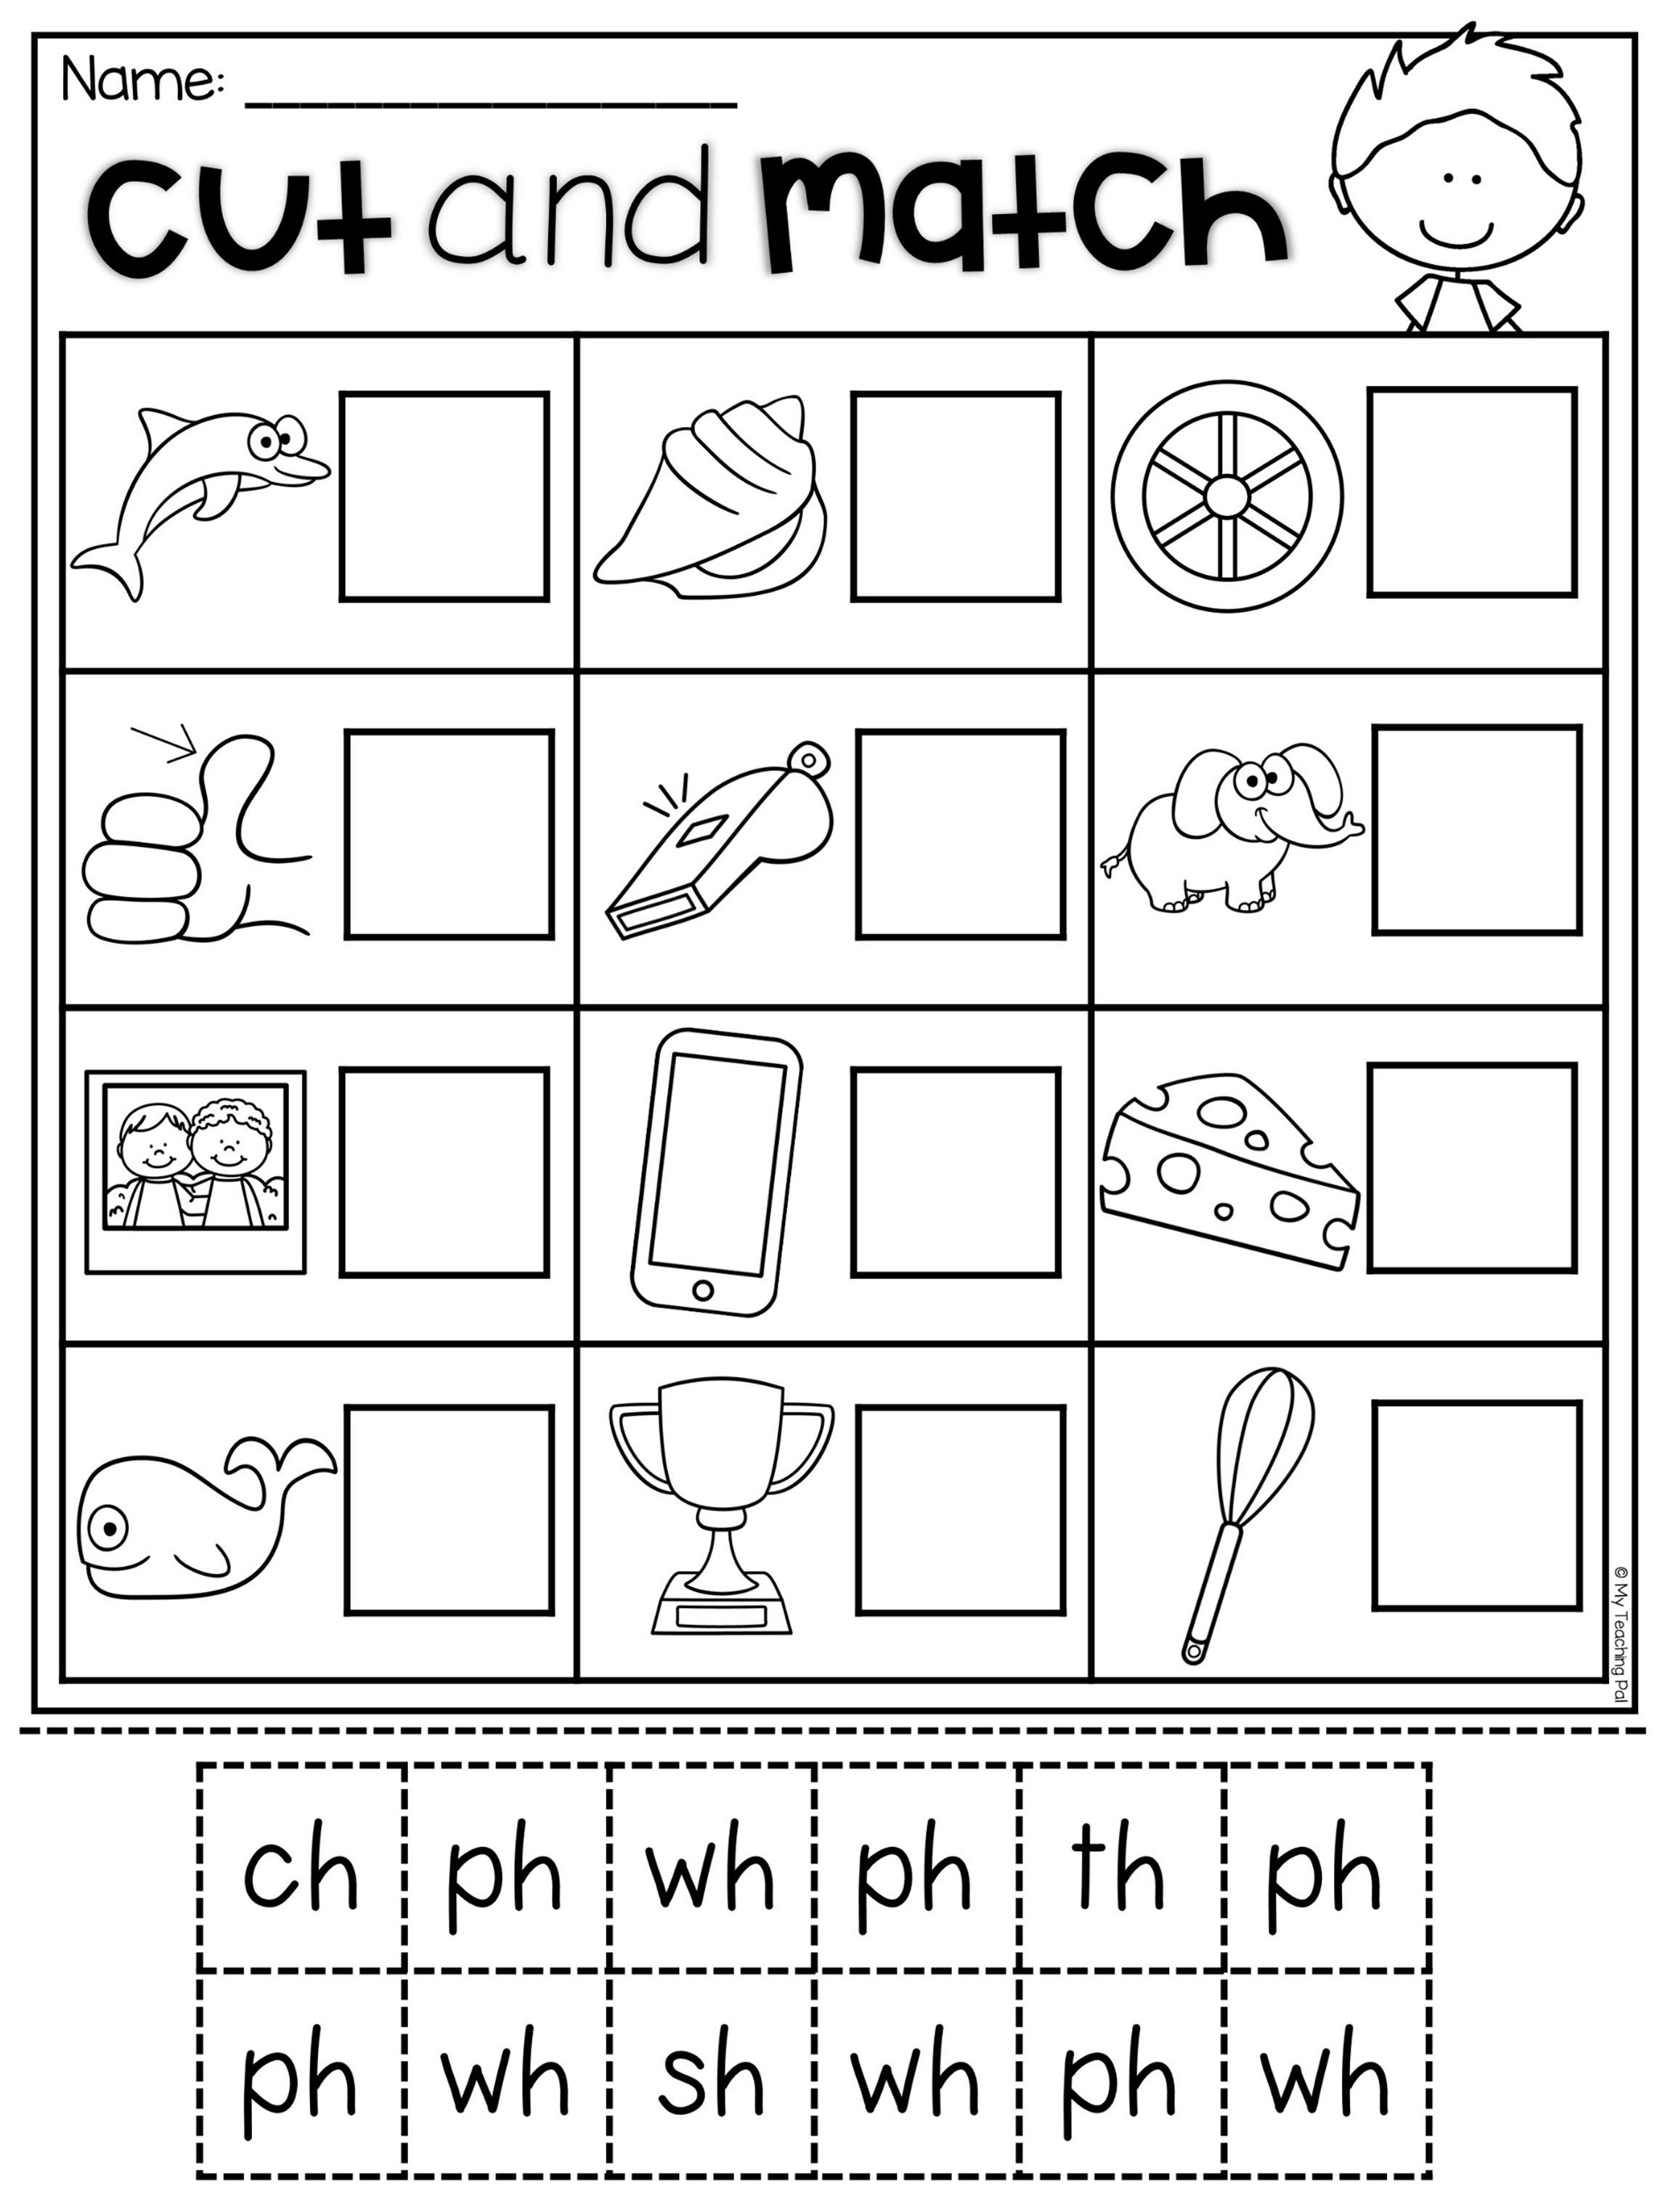 Kindergarten Worksheet Digraphs